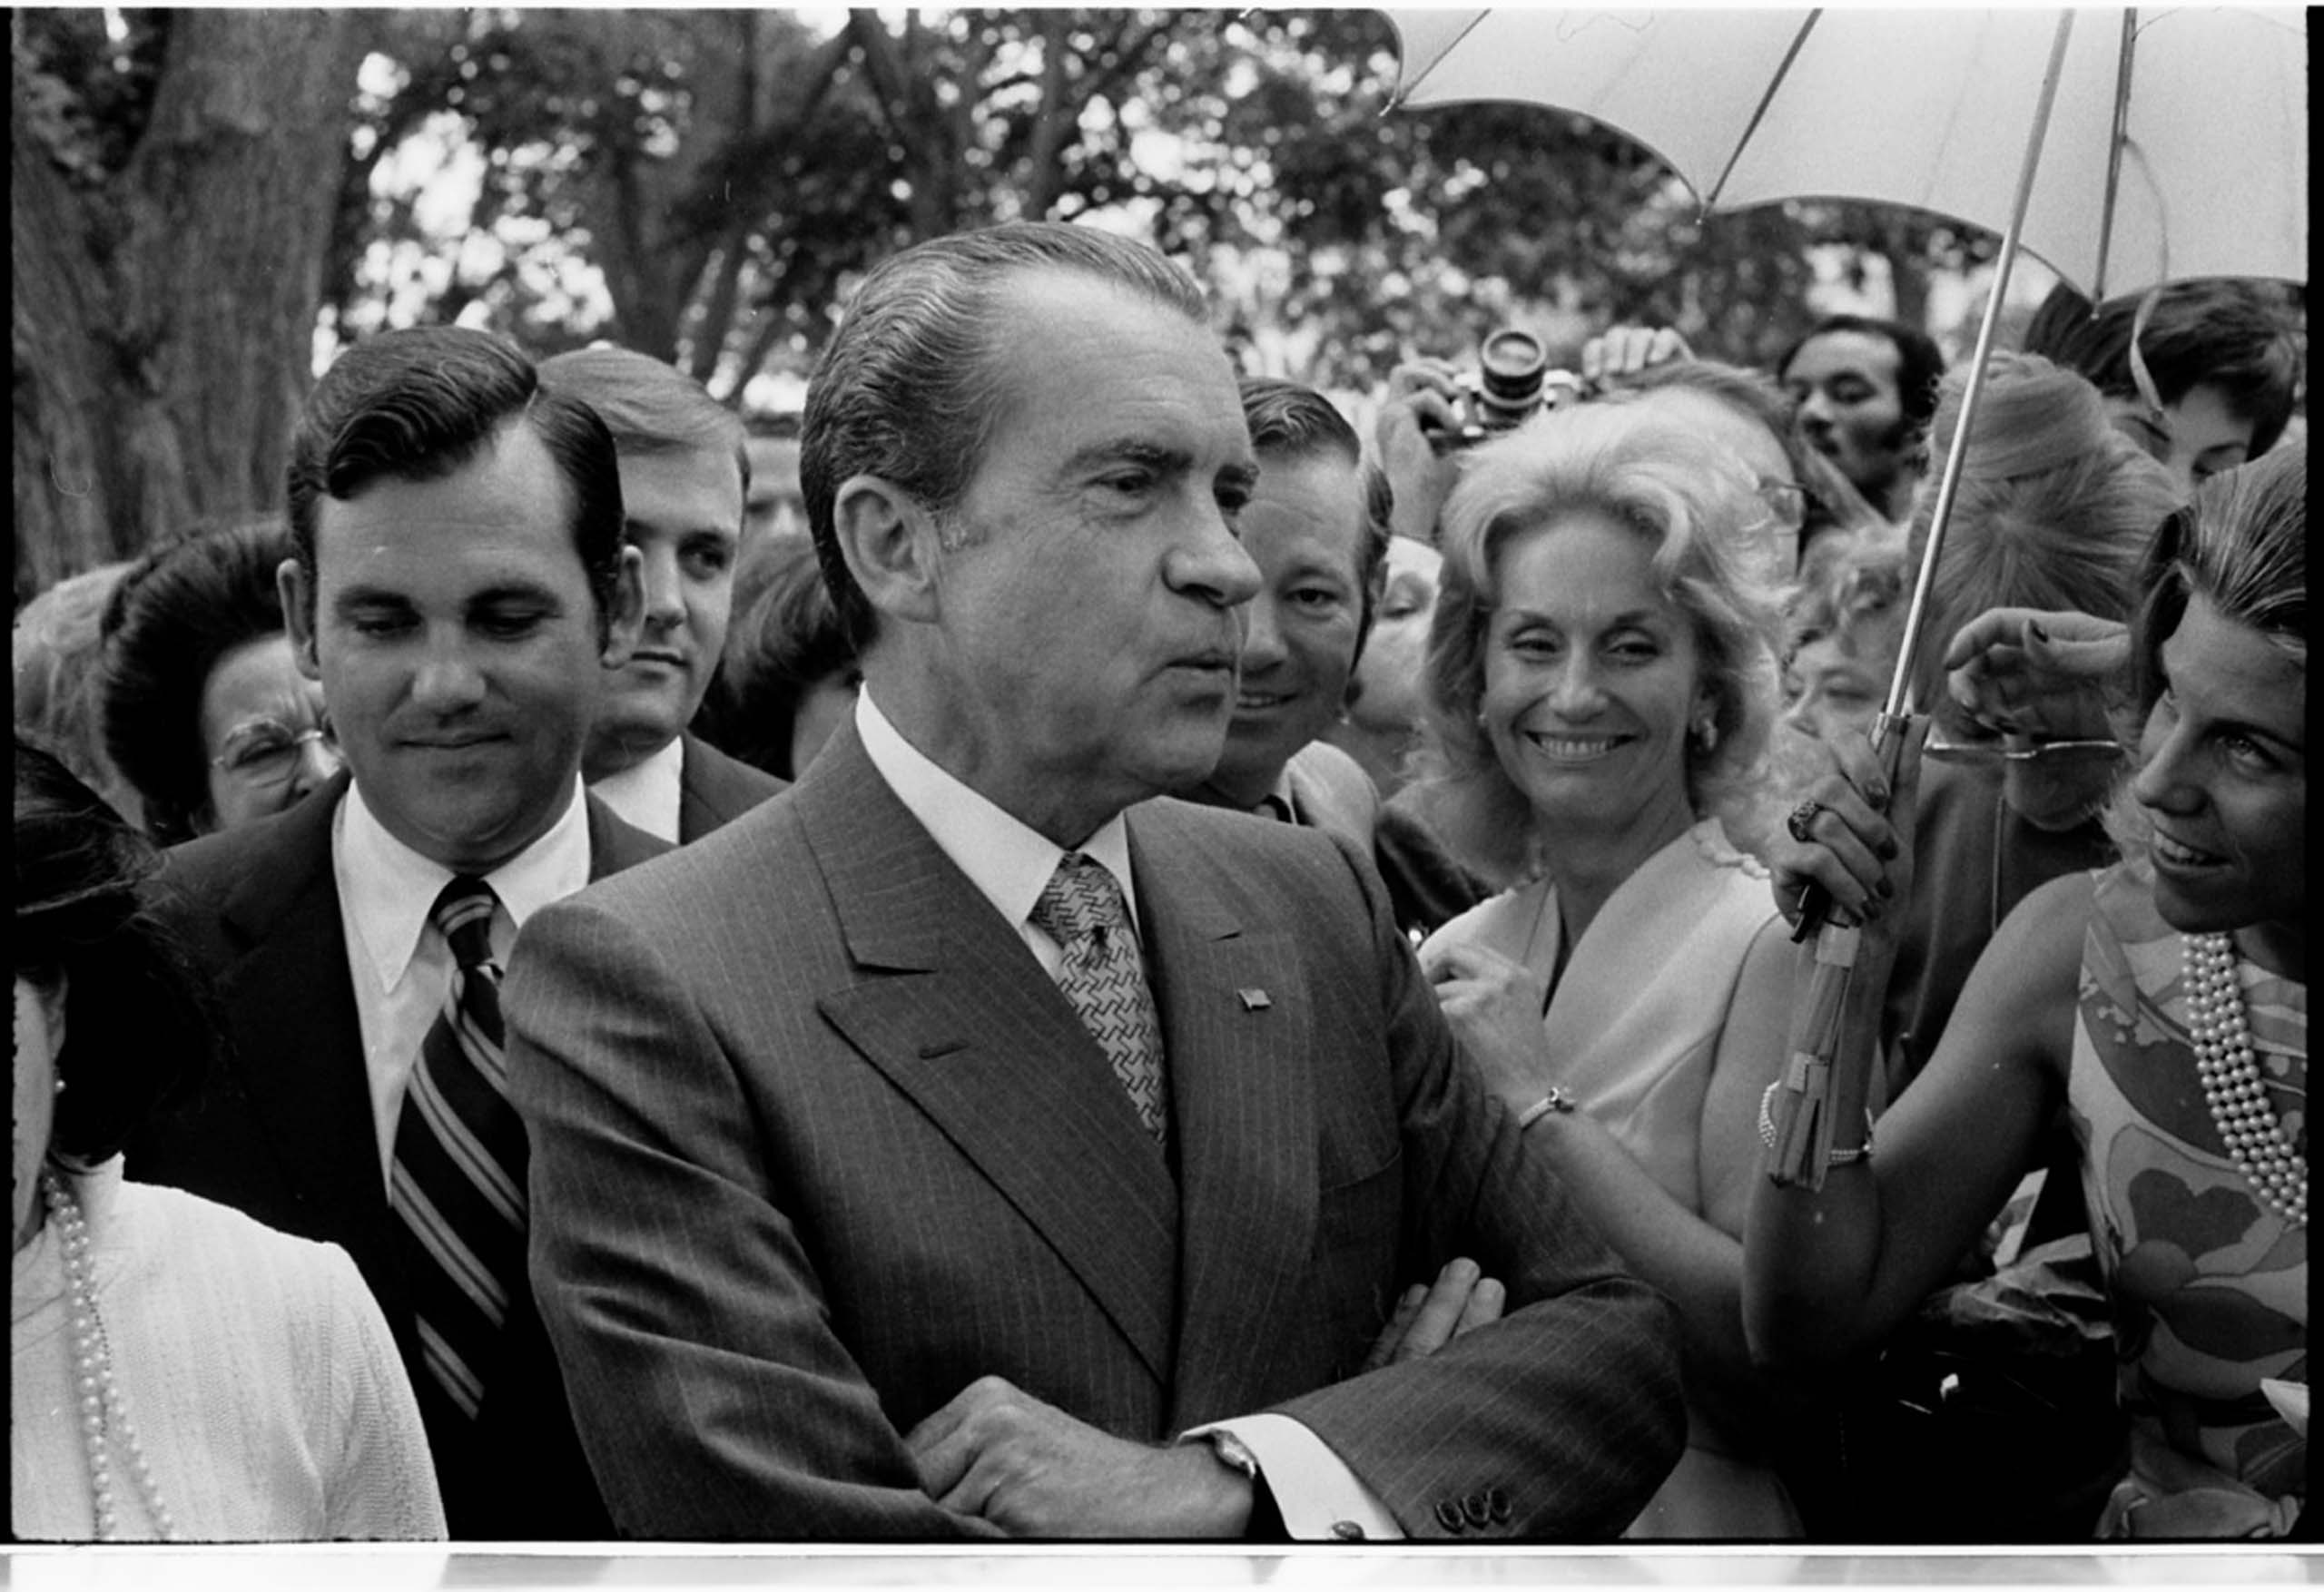 June 12, 1971. President Richard Nixon standing in a crowd of people at daughter Tricia Nixon's wedding at the White House.